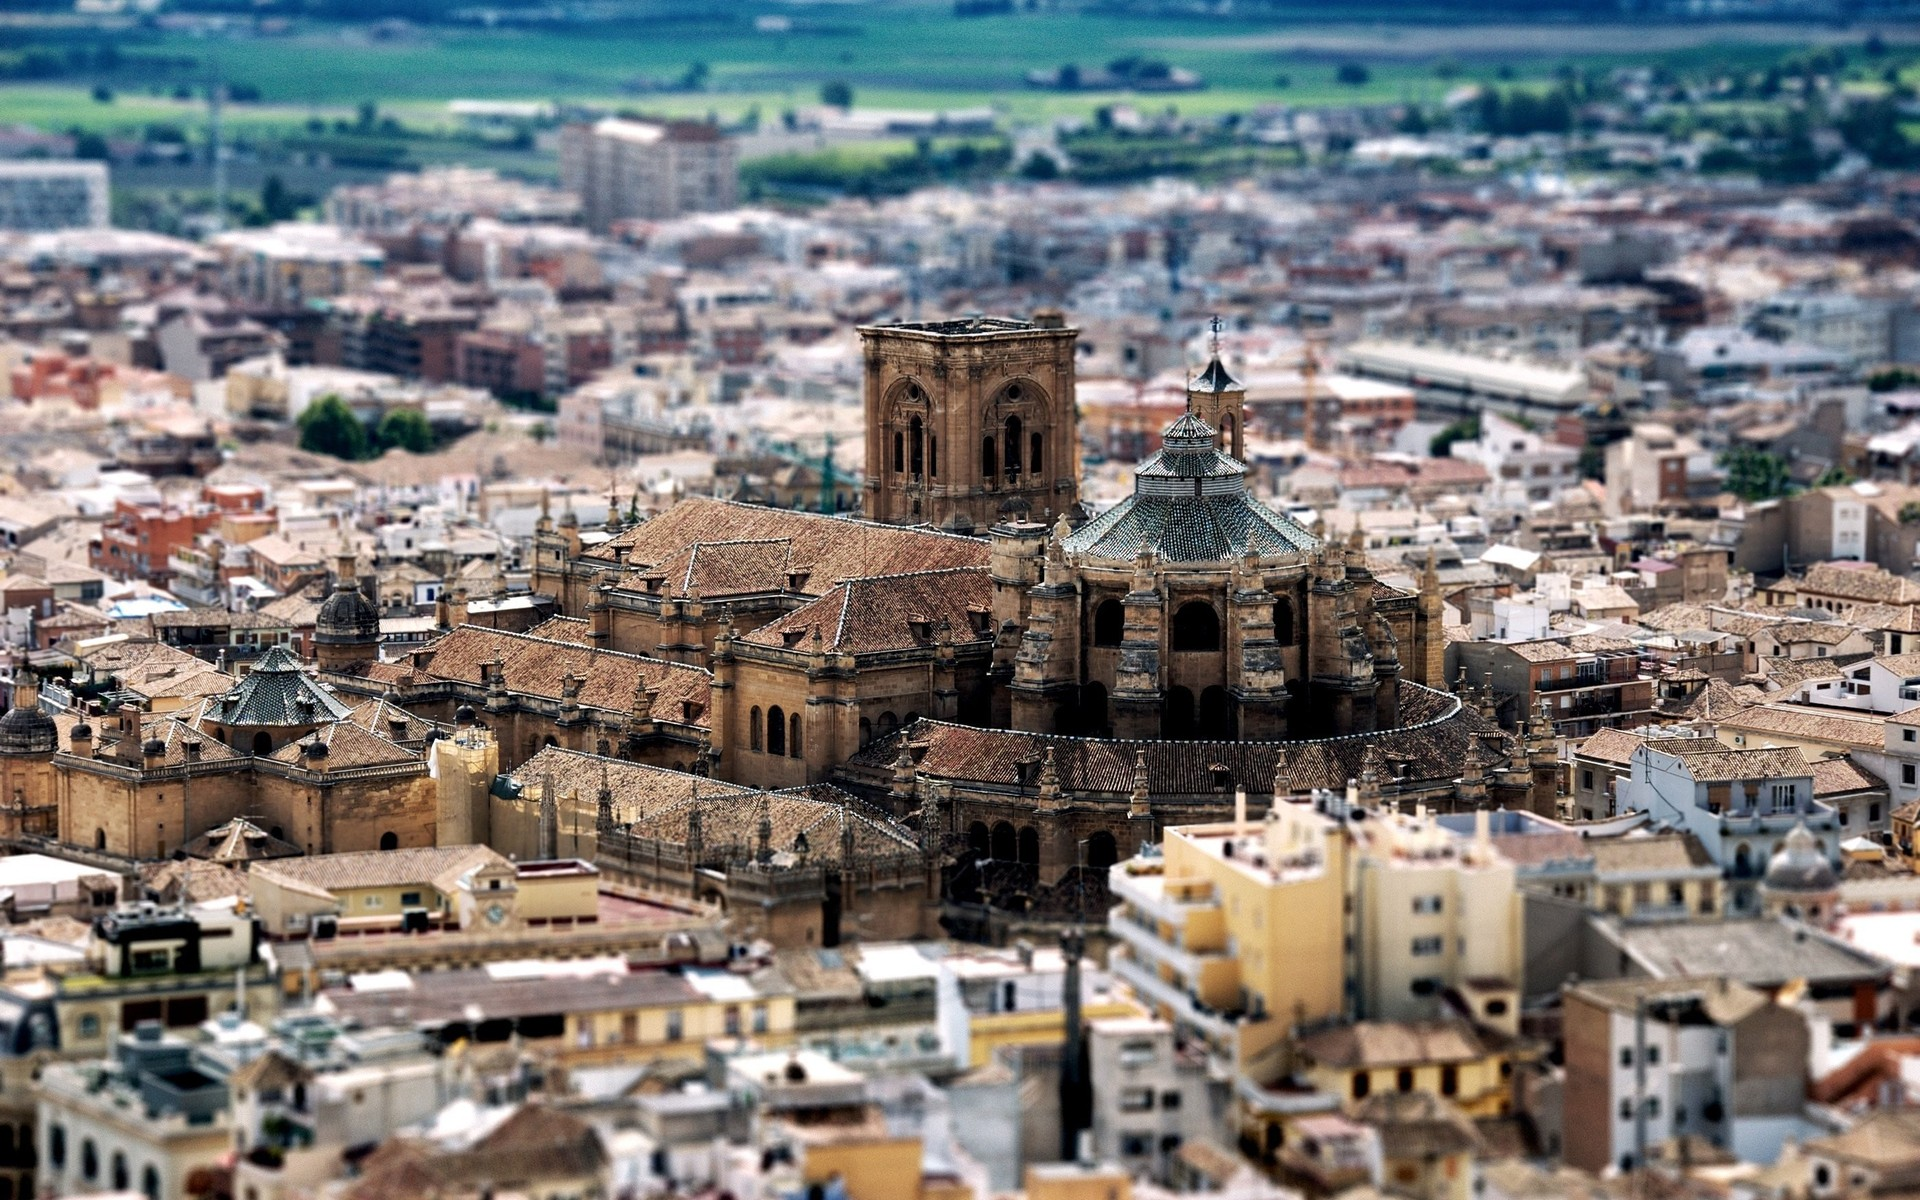 General 1920x1200 tilt shift Granada old building cityscape cathedral